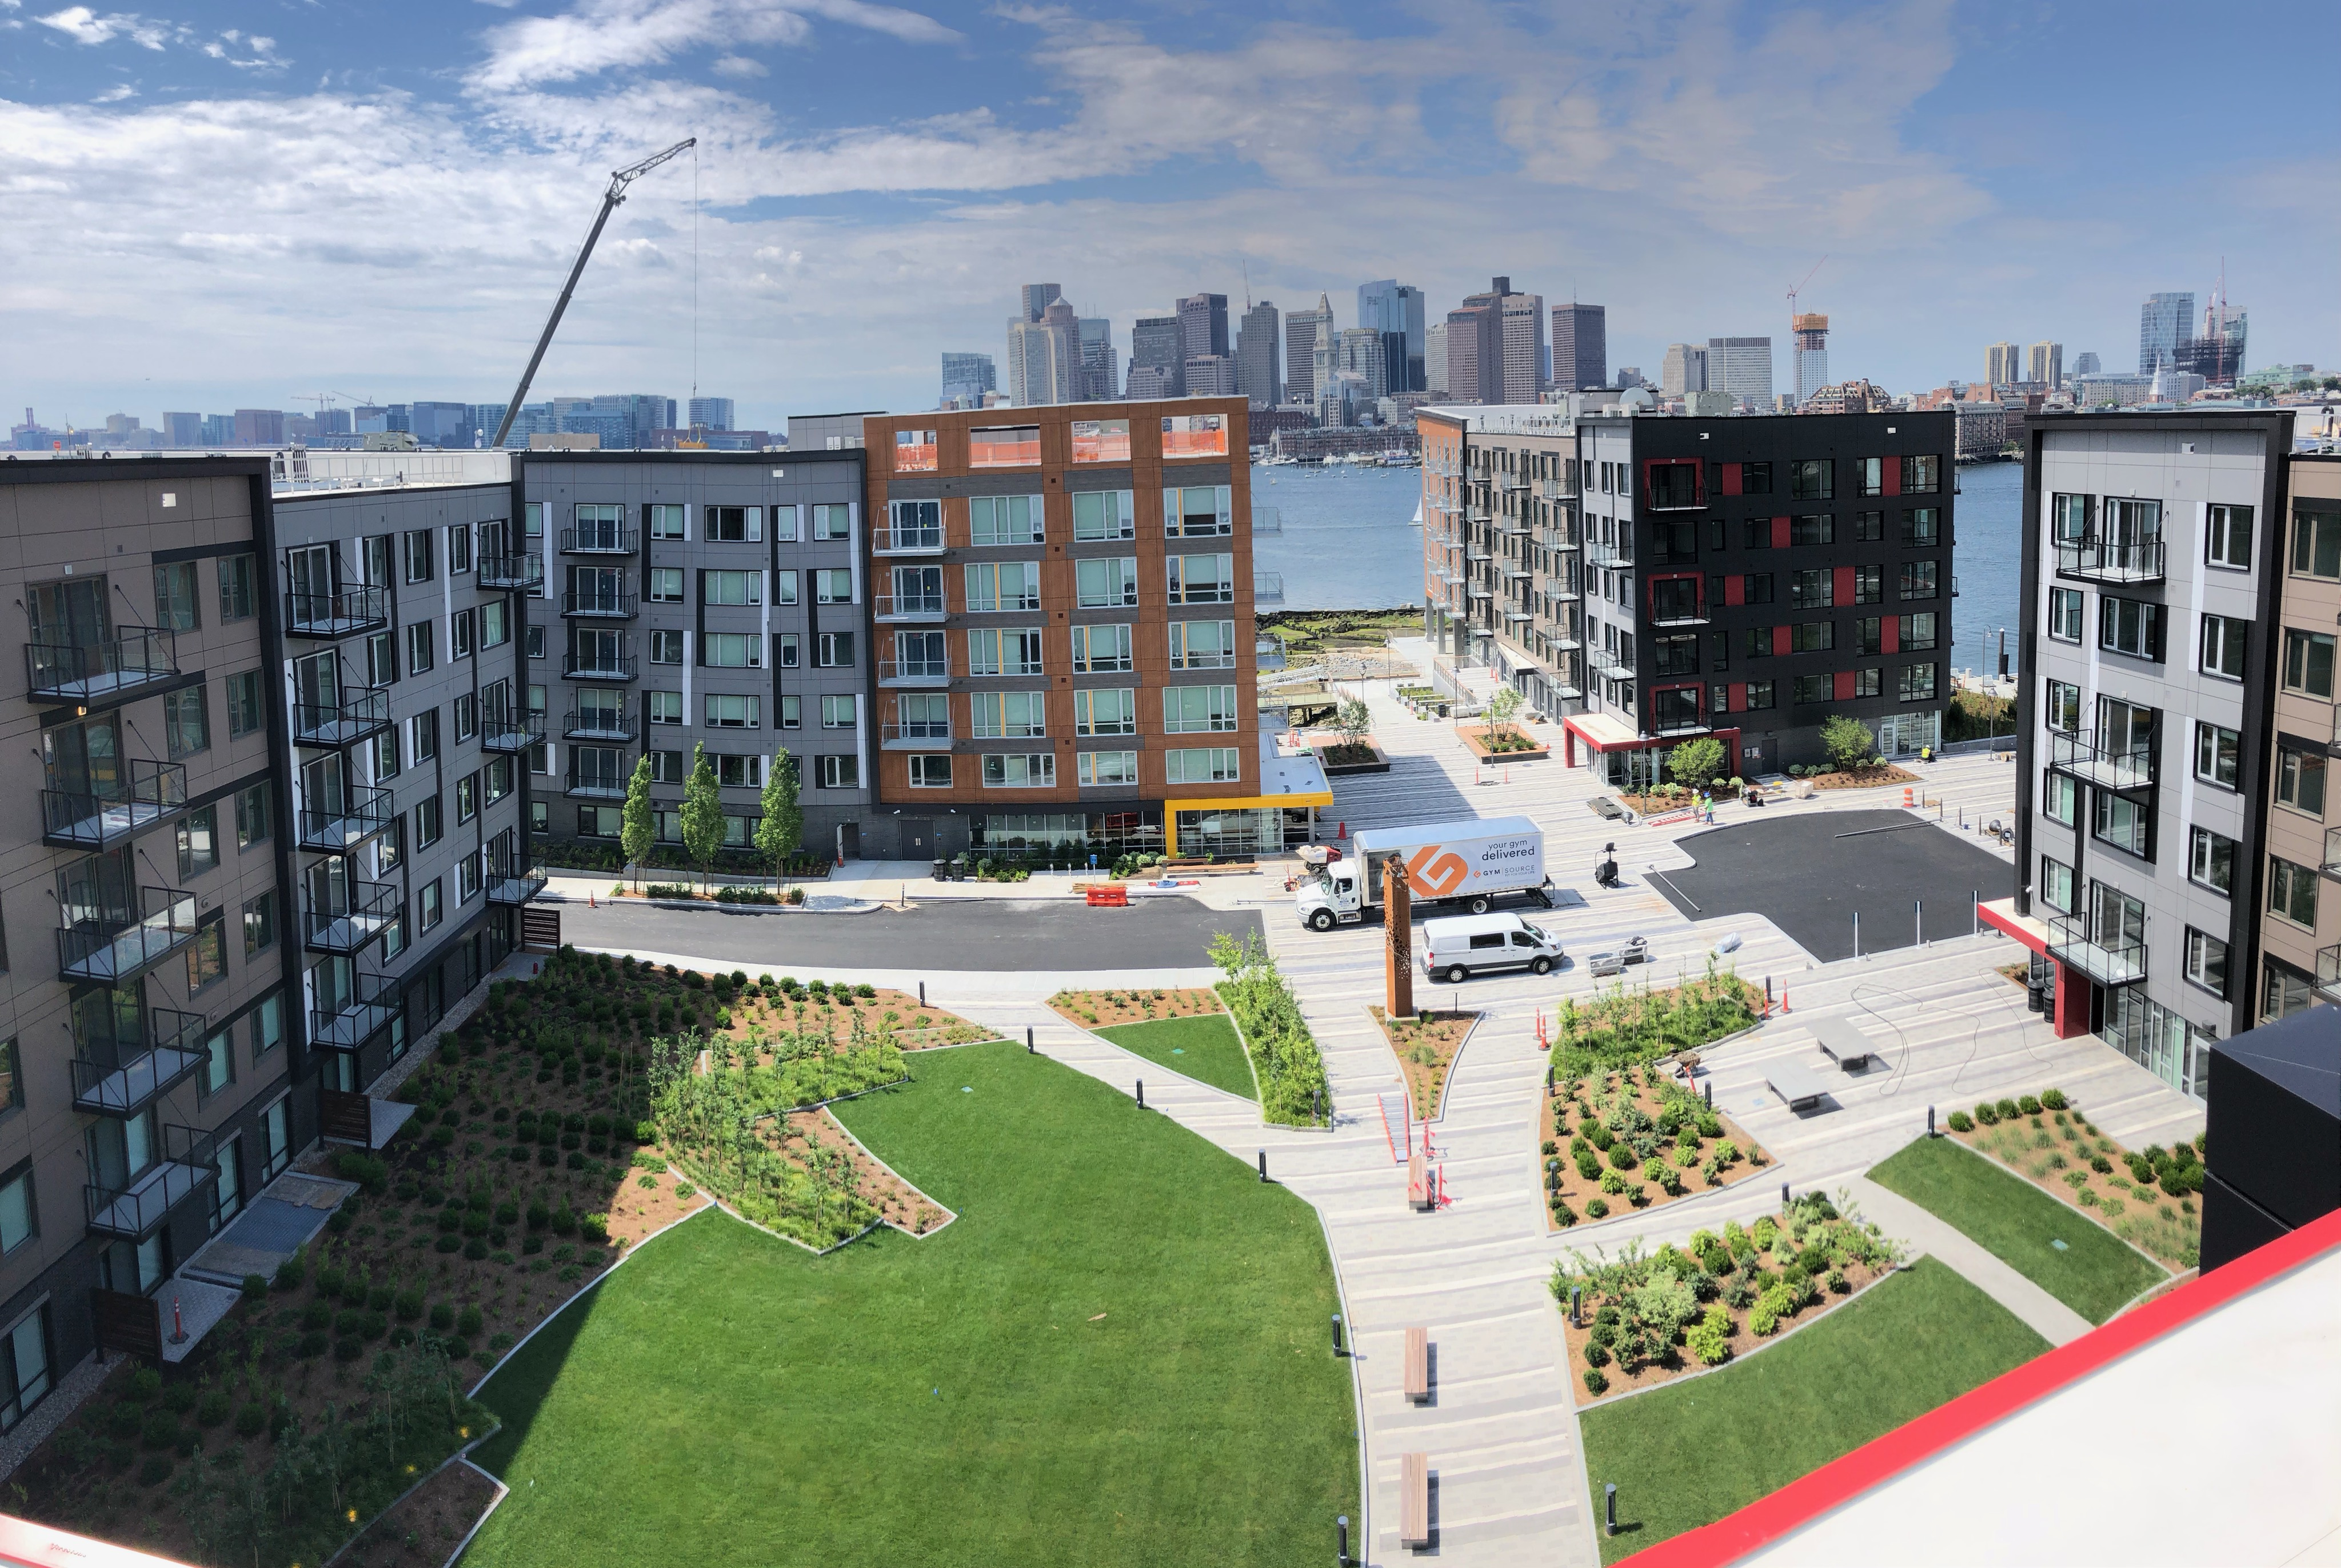 East Boston's Clippership Wharf officially opens with storm-barrier system